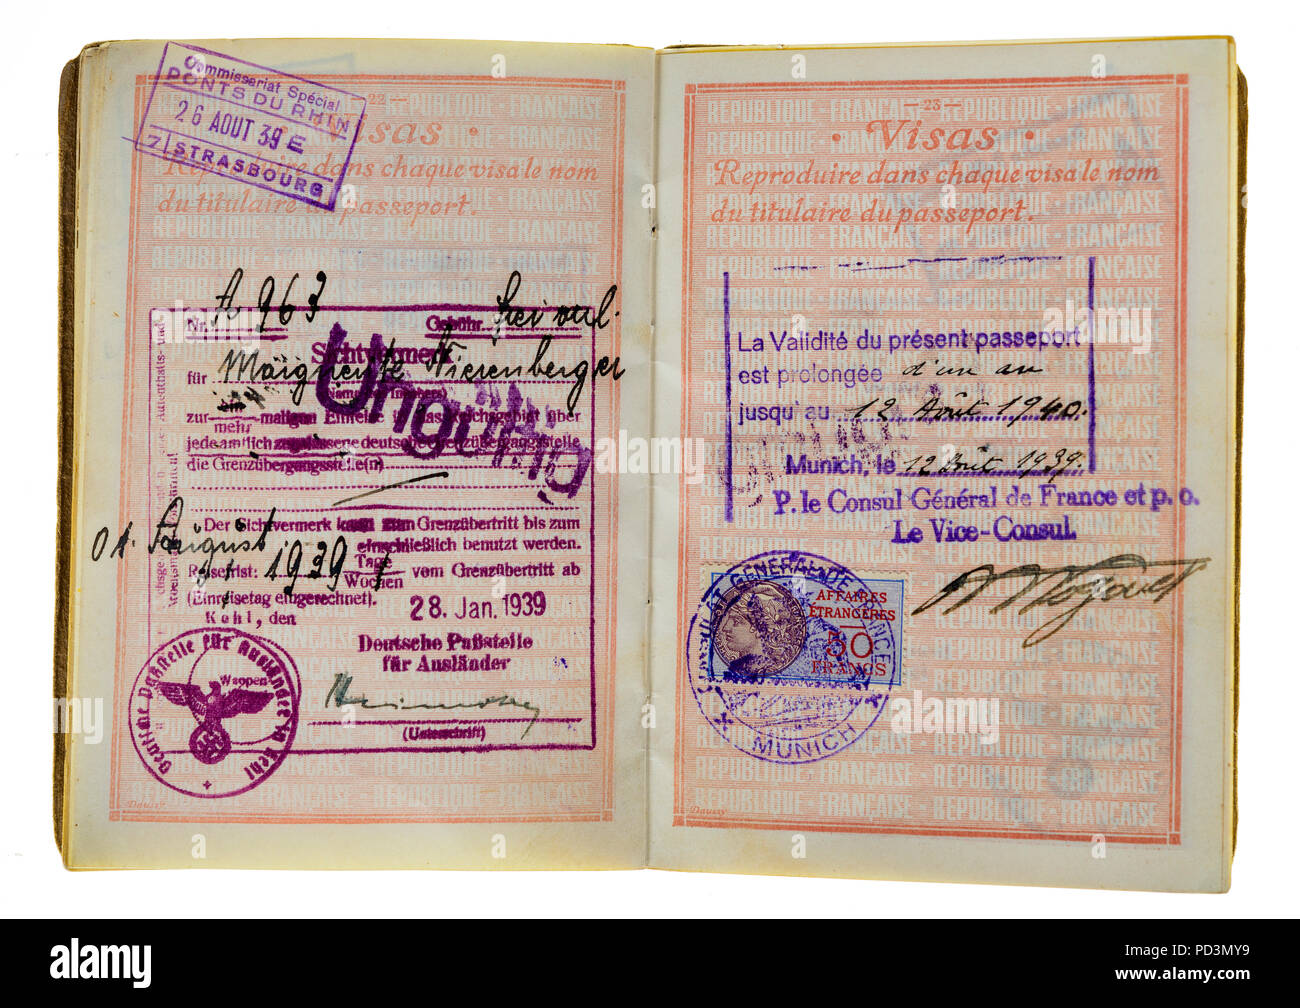 1935's vintage French passport, pages with 1939 German visas stamps marks and renewal date from August 12 1939 until August 12 1940, - Stock Image